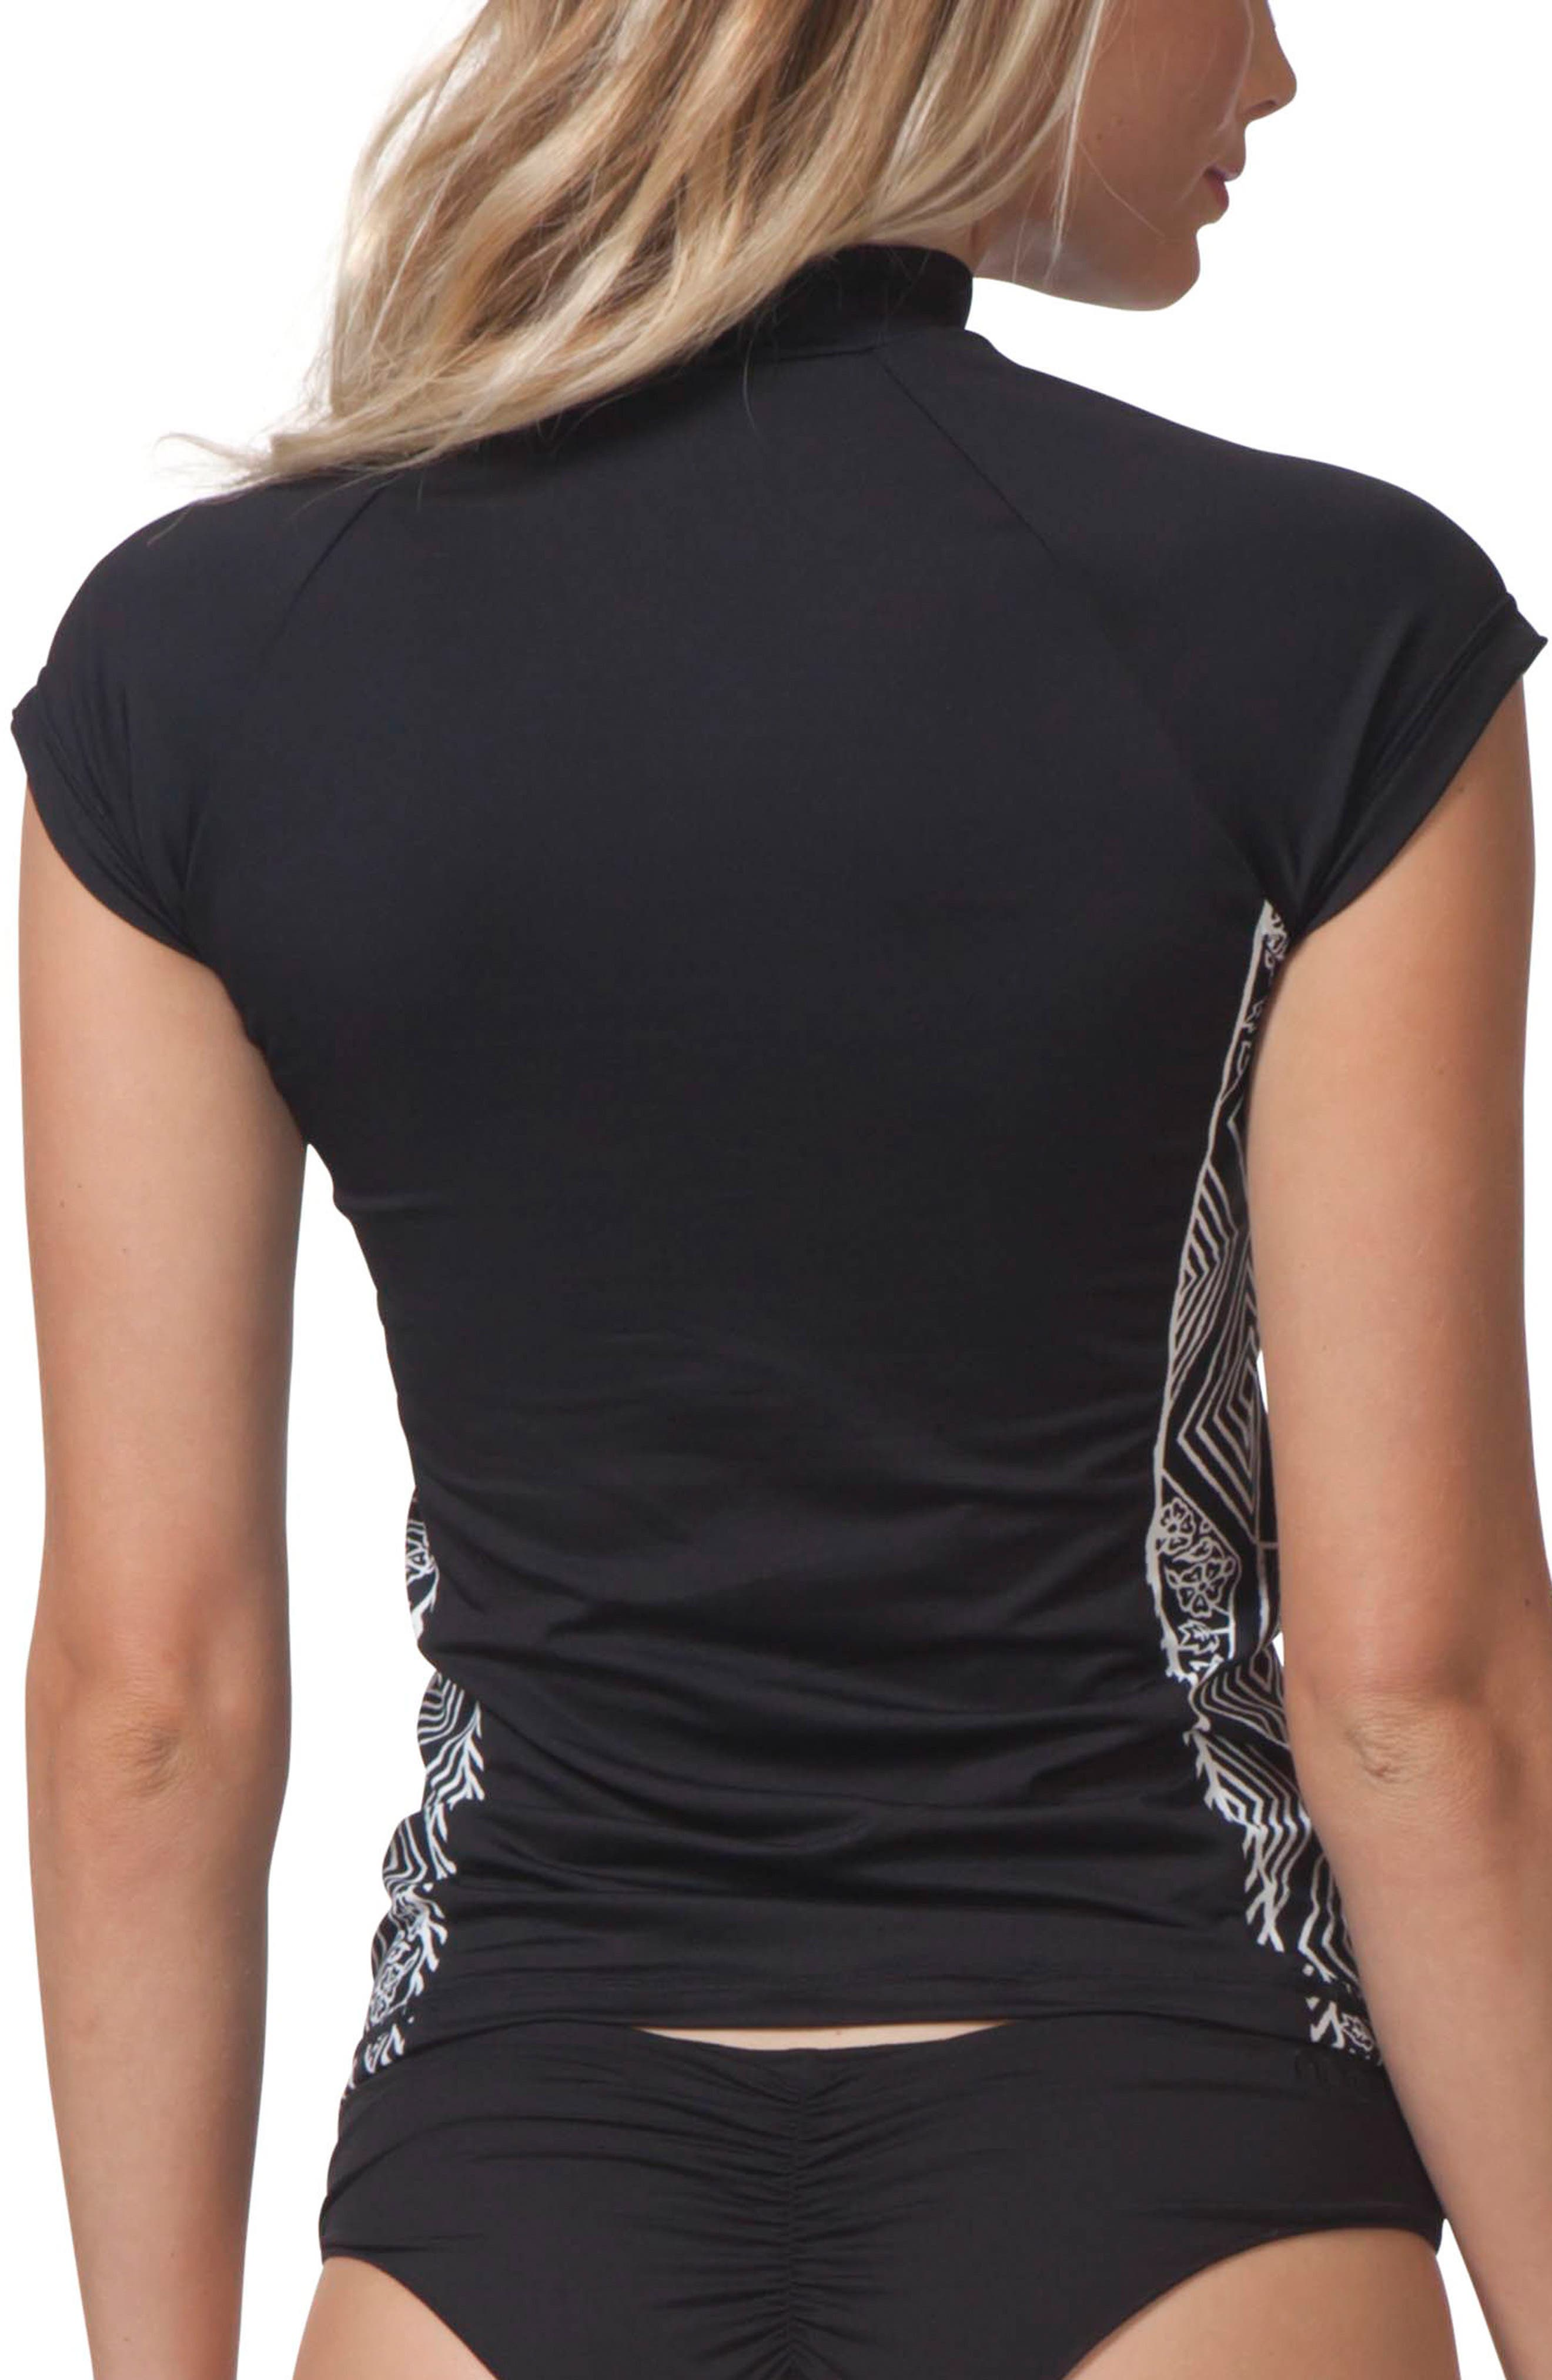 Black Sands Rashguard Top,                             Alternate thumbnail 2, color,                             001